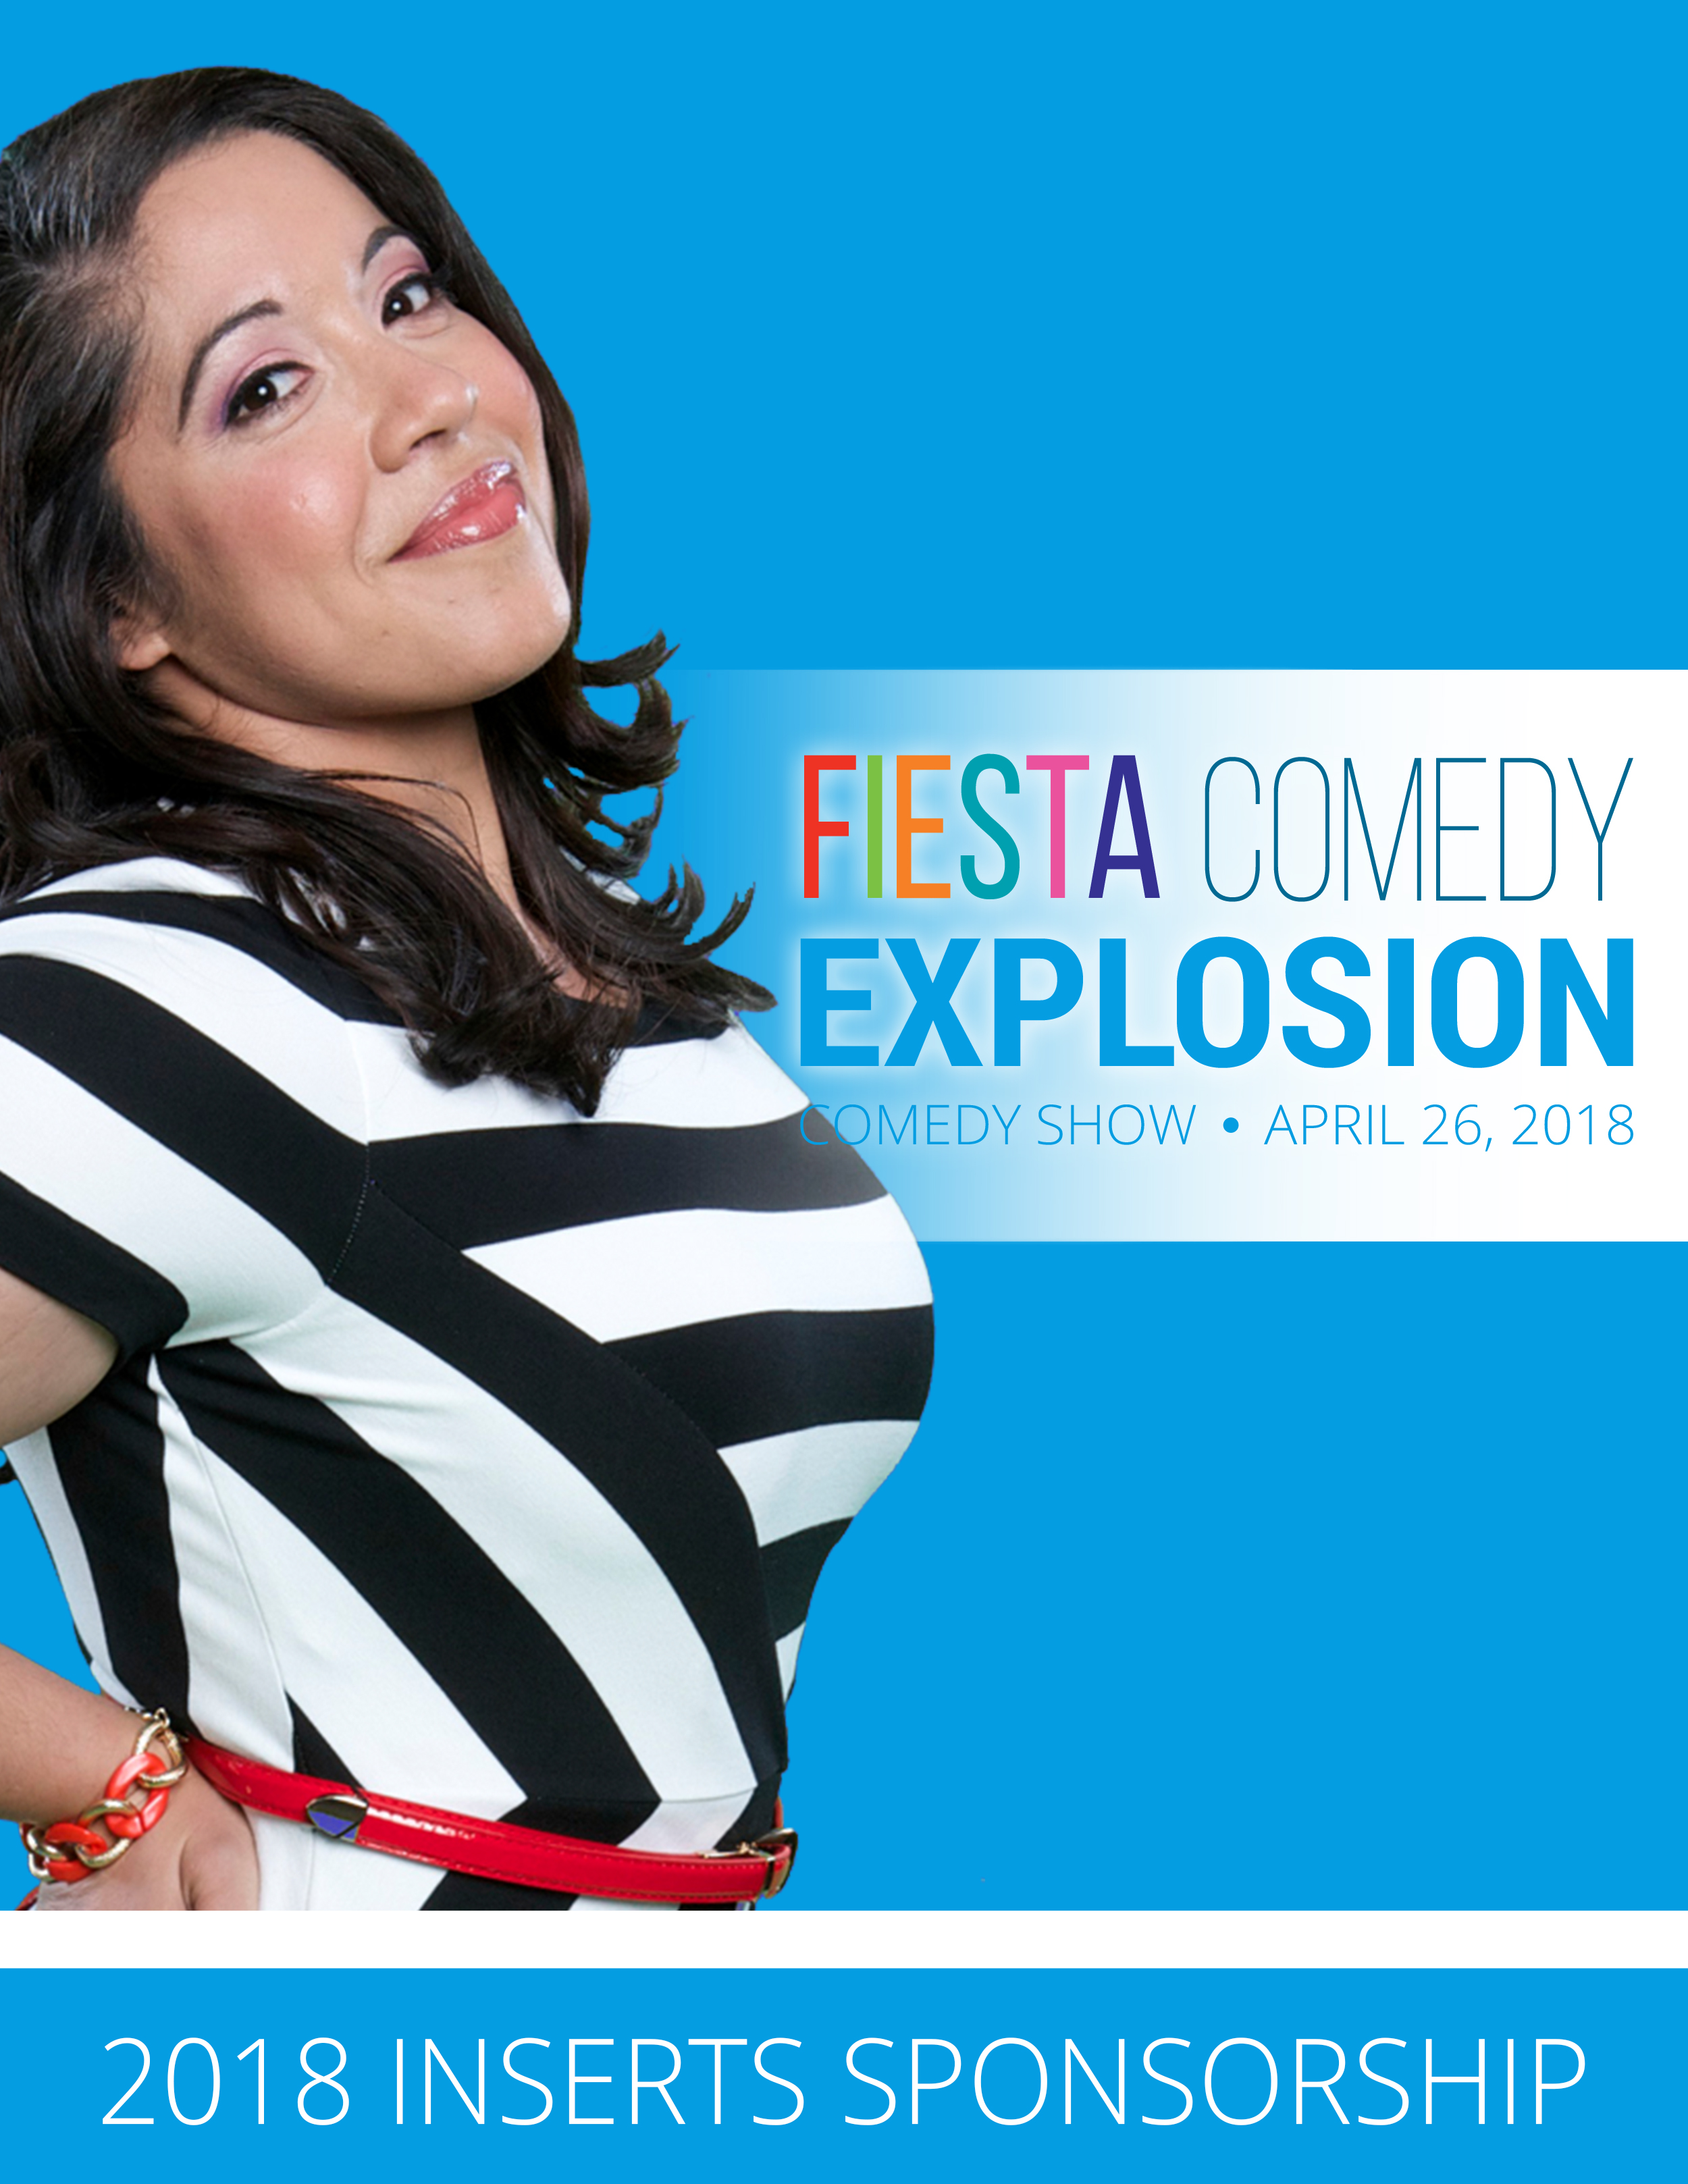 Inserts Sponsorship | Fiesta Comedy Explosion 2018 Sponsorship Package | Fiesta San Antonio | Official Priest Holmes Foundation Website | Priest Holmes Son | Priest Holmes Girlfriend | Priest Holmes Wife | Priest Holmes Engaged | Priest Holmes Family | Priest Holmes is Engaged